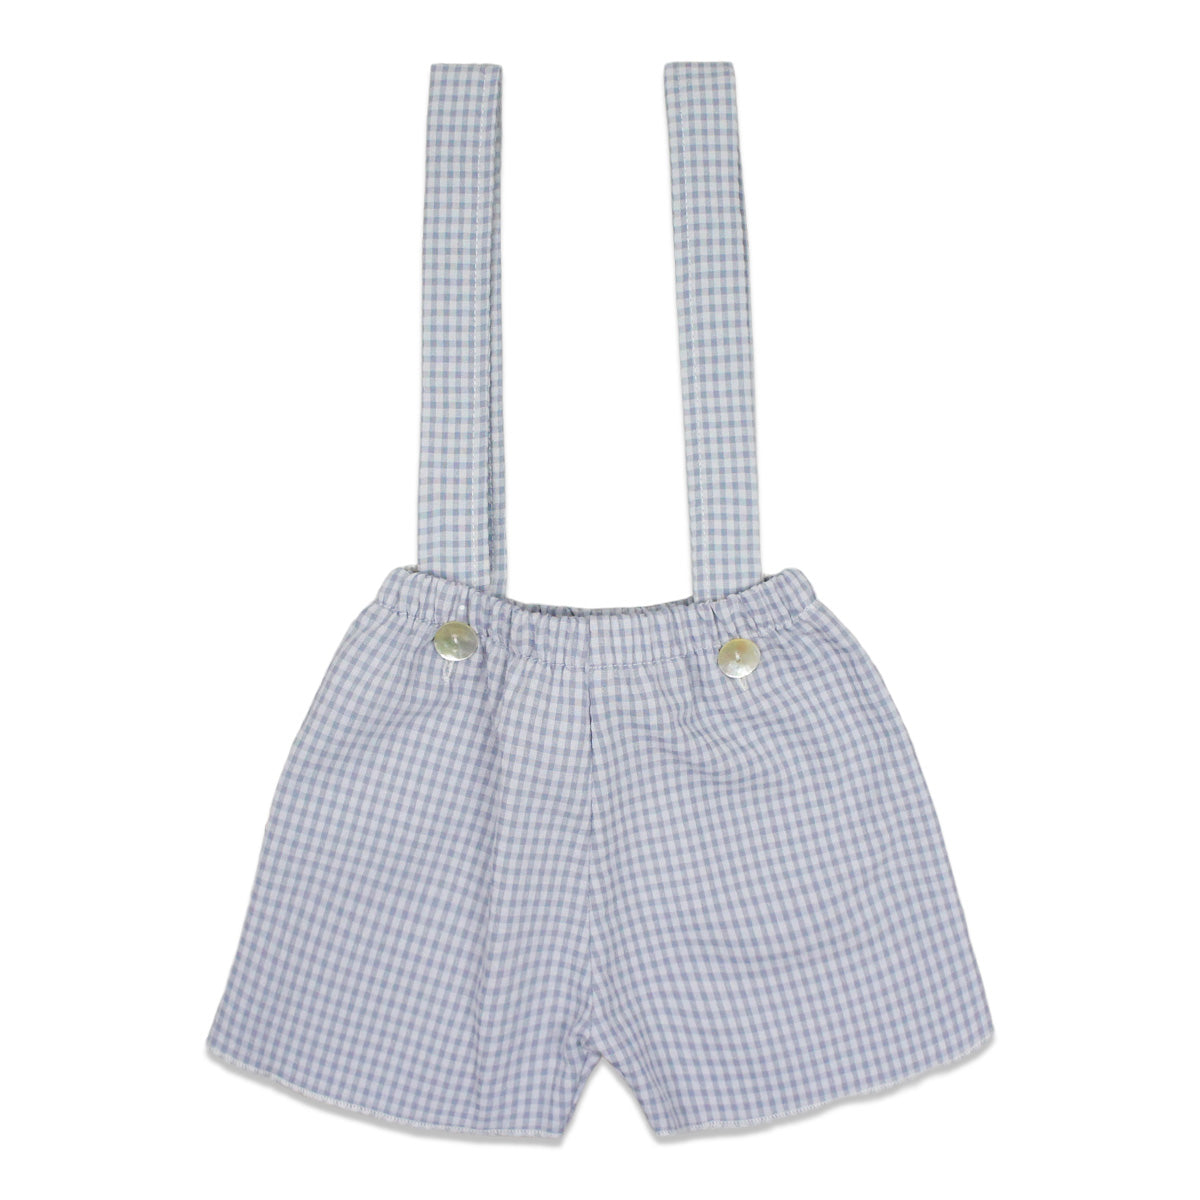 Latte Baby Grey Mattia Shorts